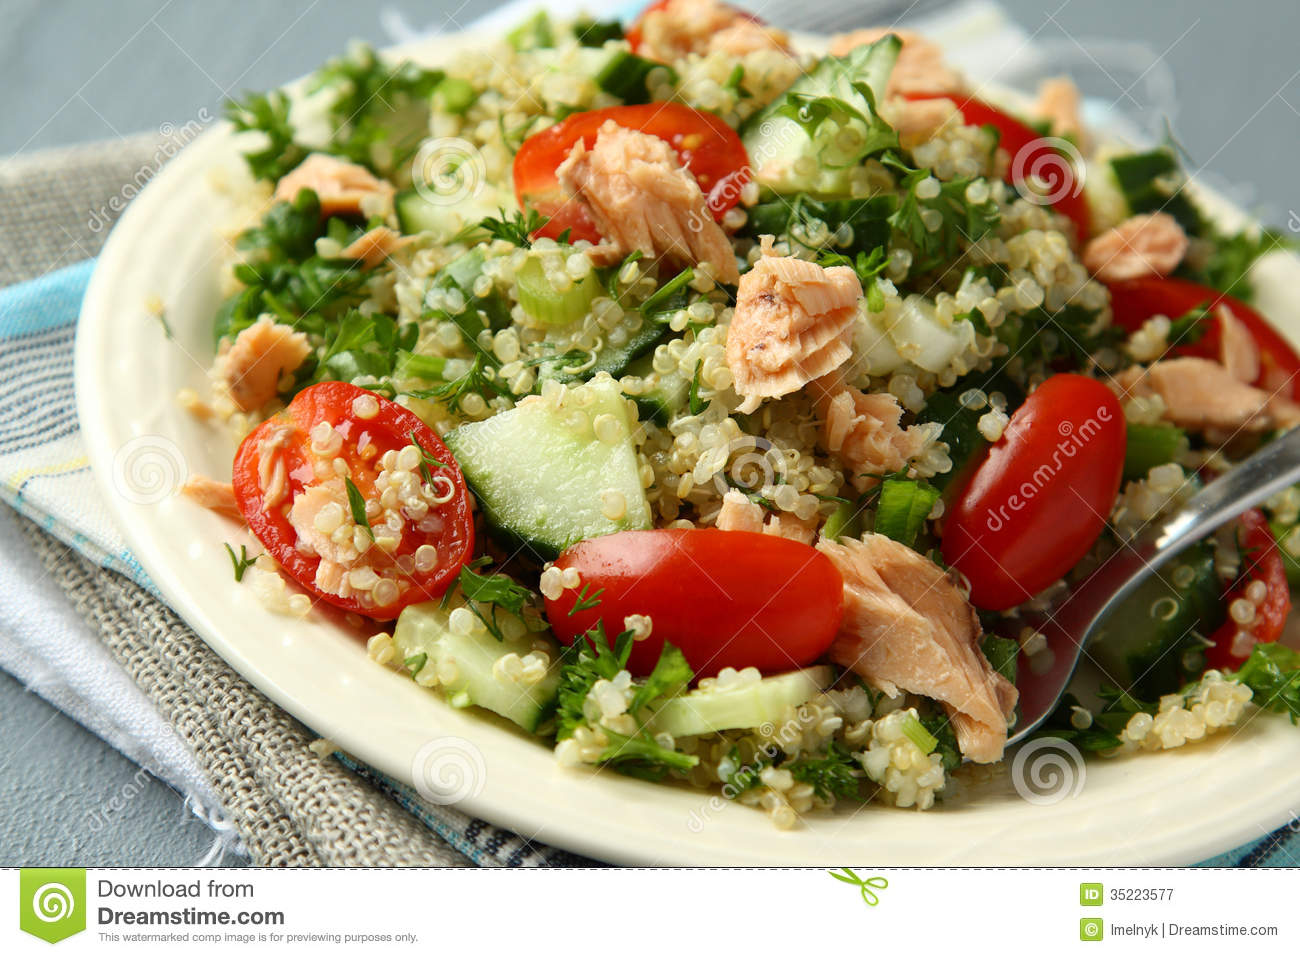 Tabbouleh Salad With Quinoa And Salmon Royalty Free Stock Photography ...